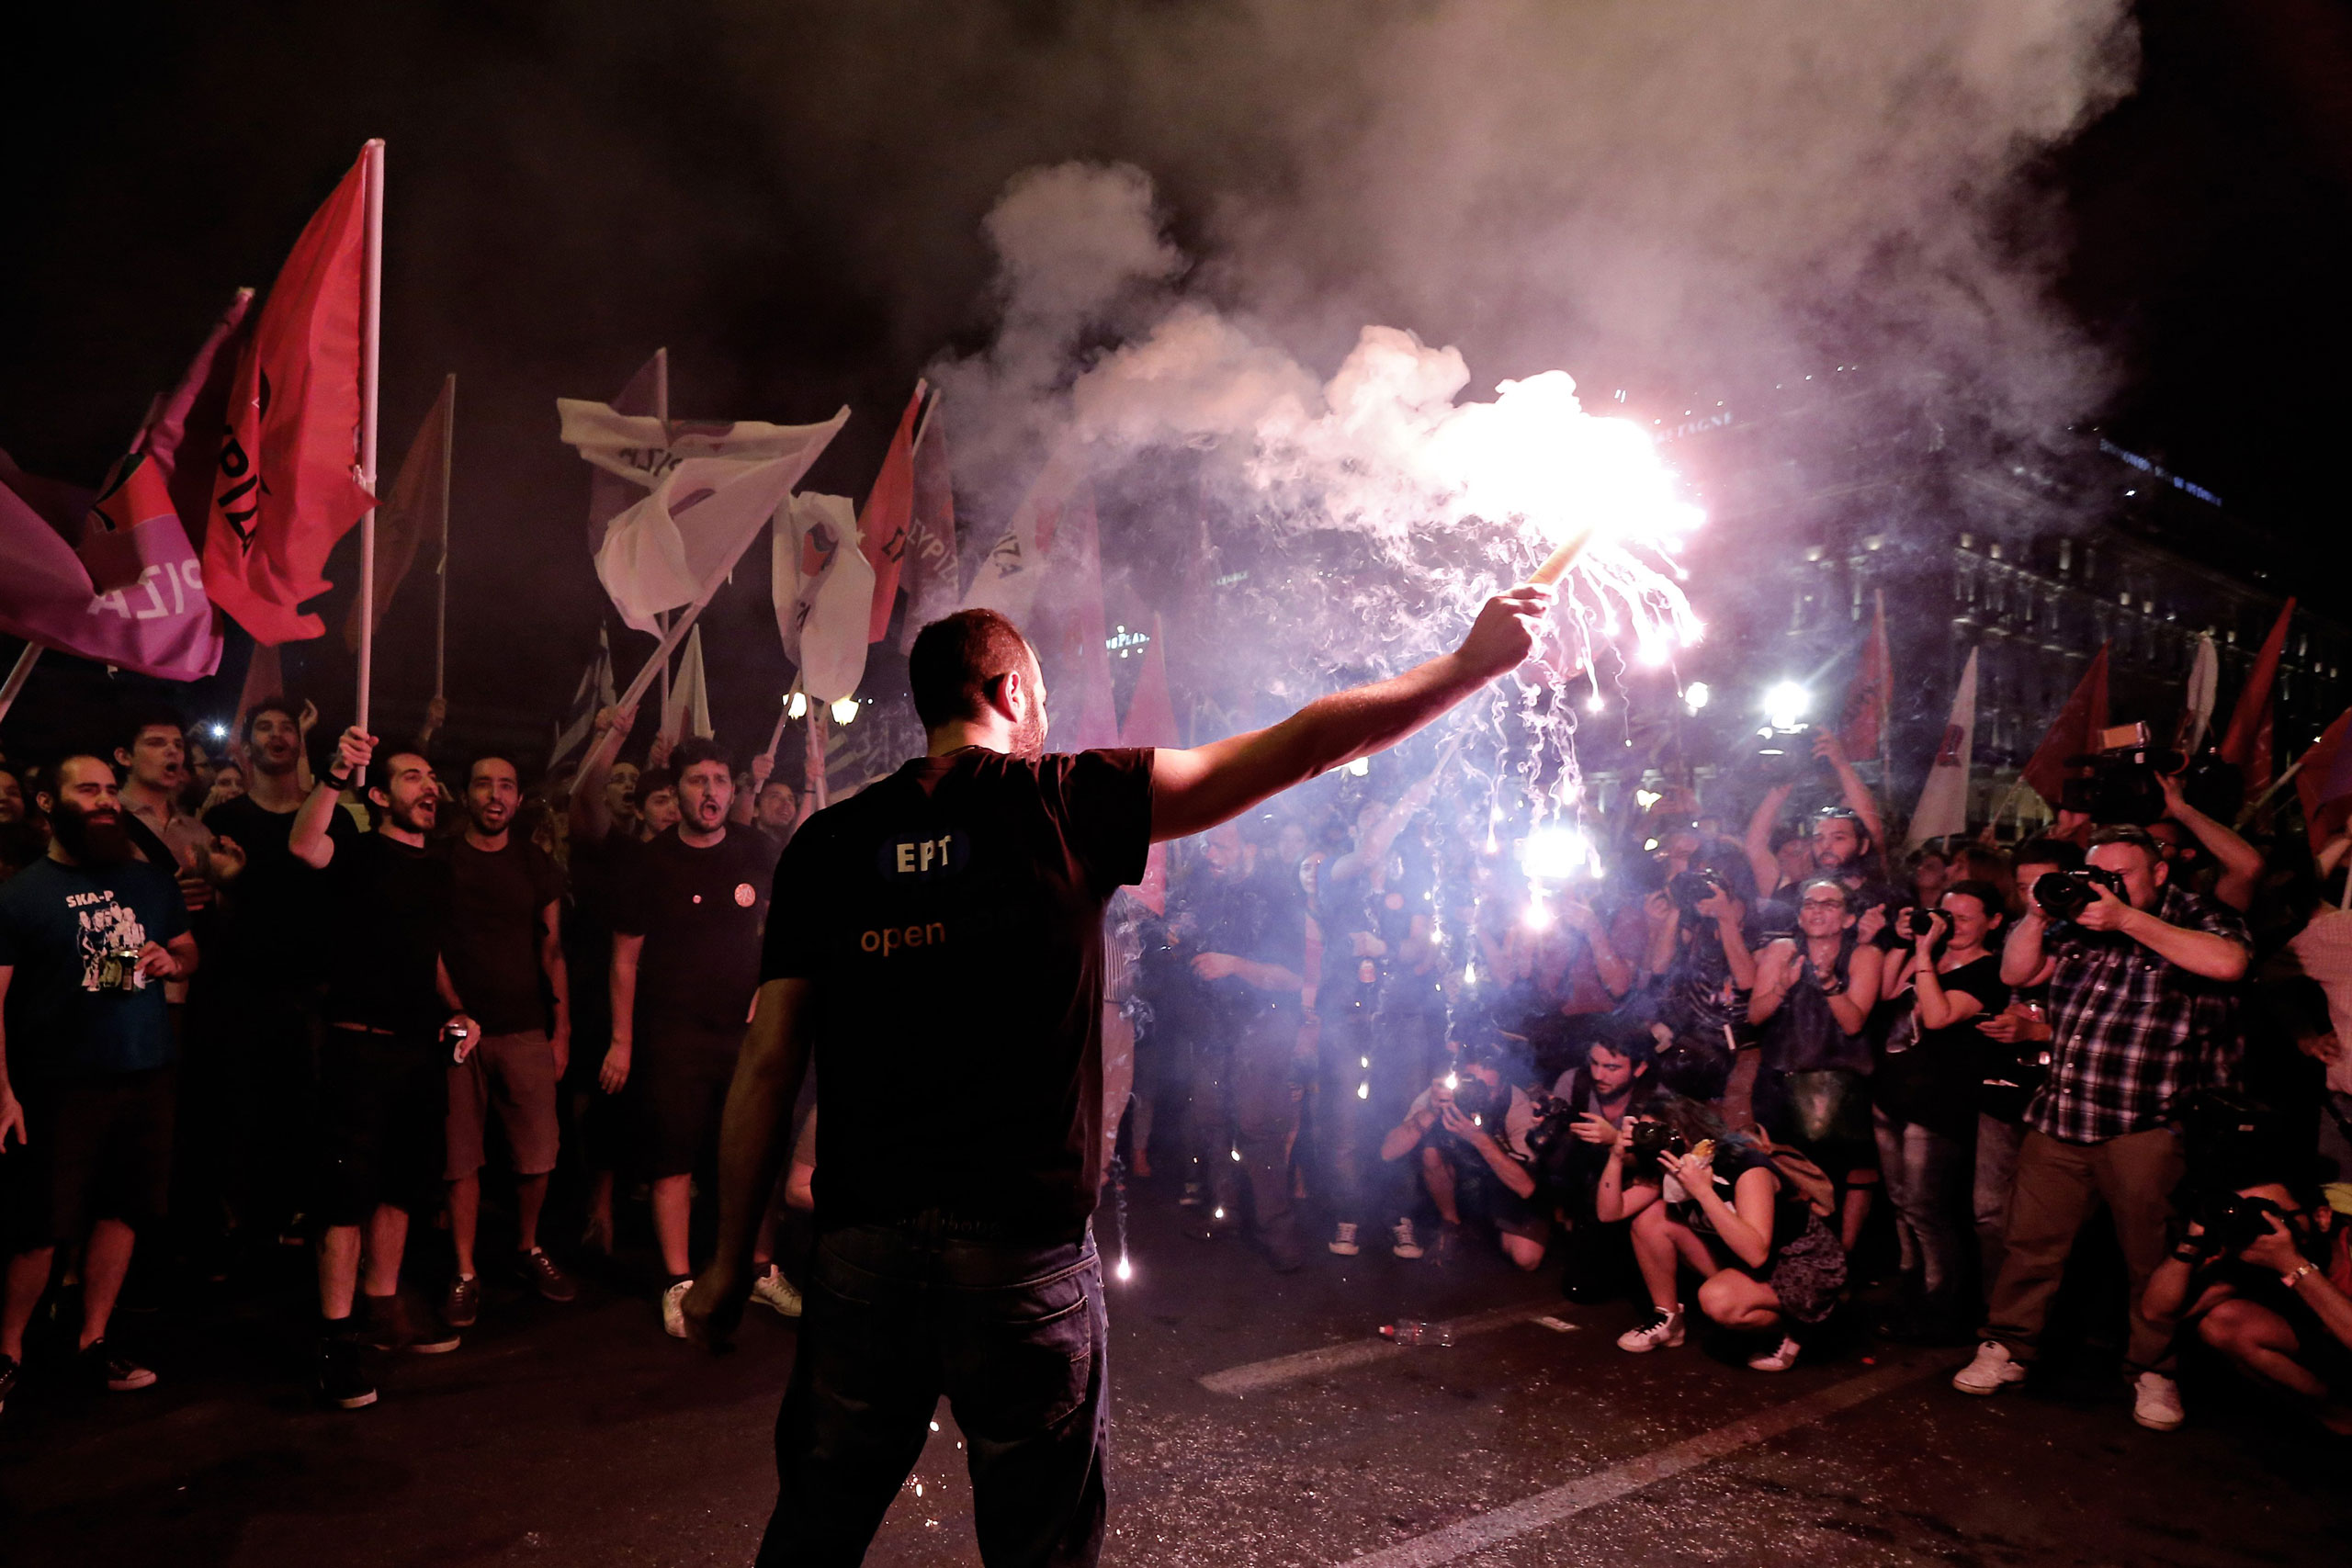 """No"" supporters celebrate the referendum results on a street in central in Athens on July 5, 2015."